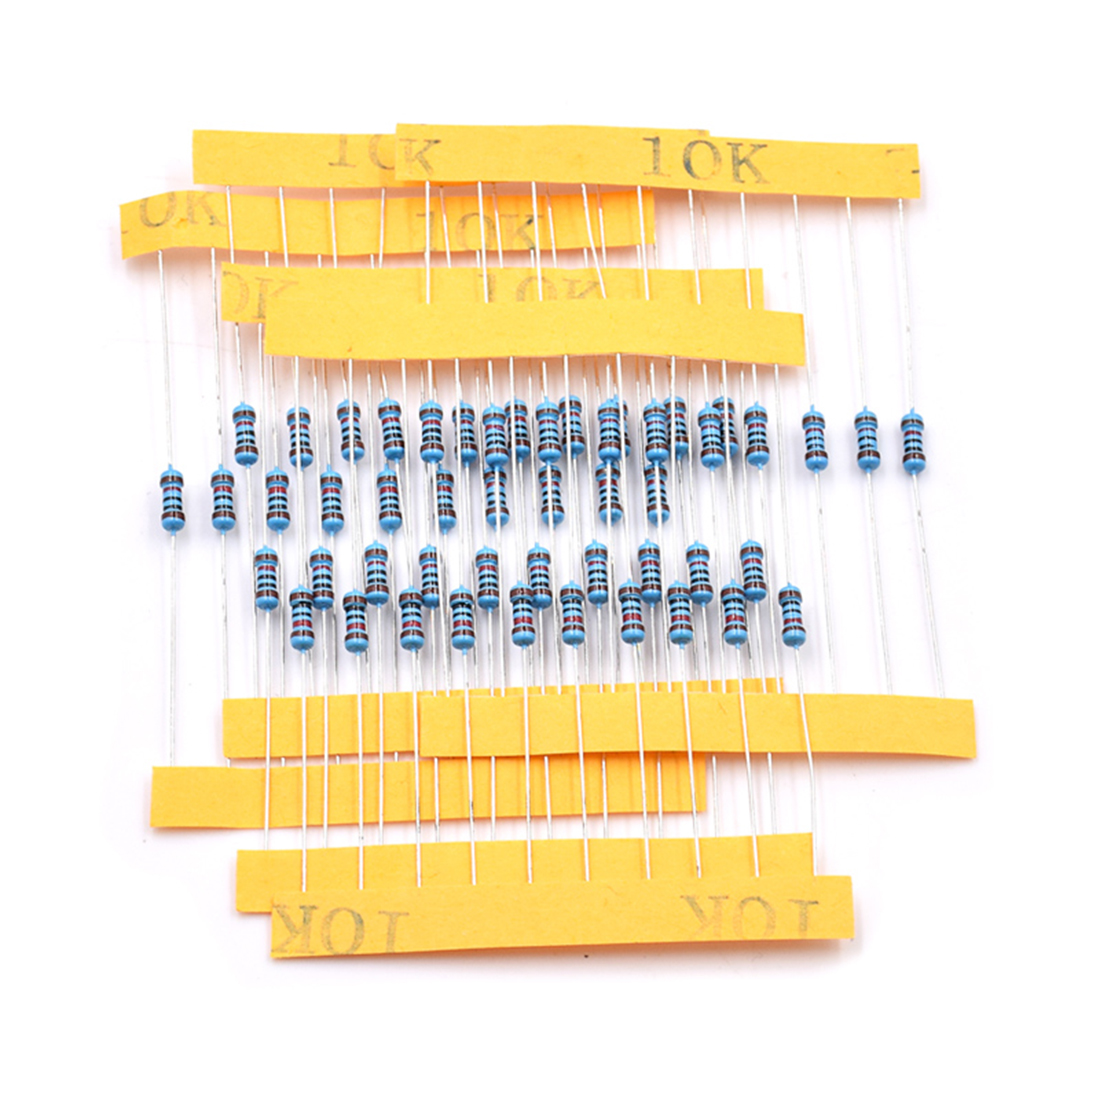 600Pcs 1% Precision 1/4W Metal Film Resistor Assorted Kit